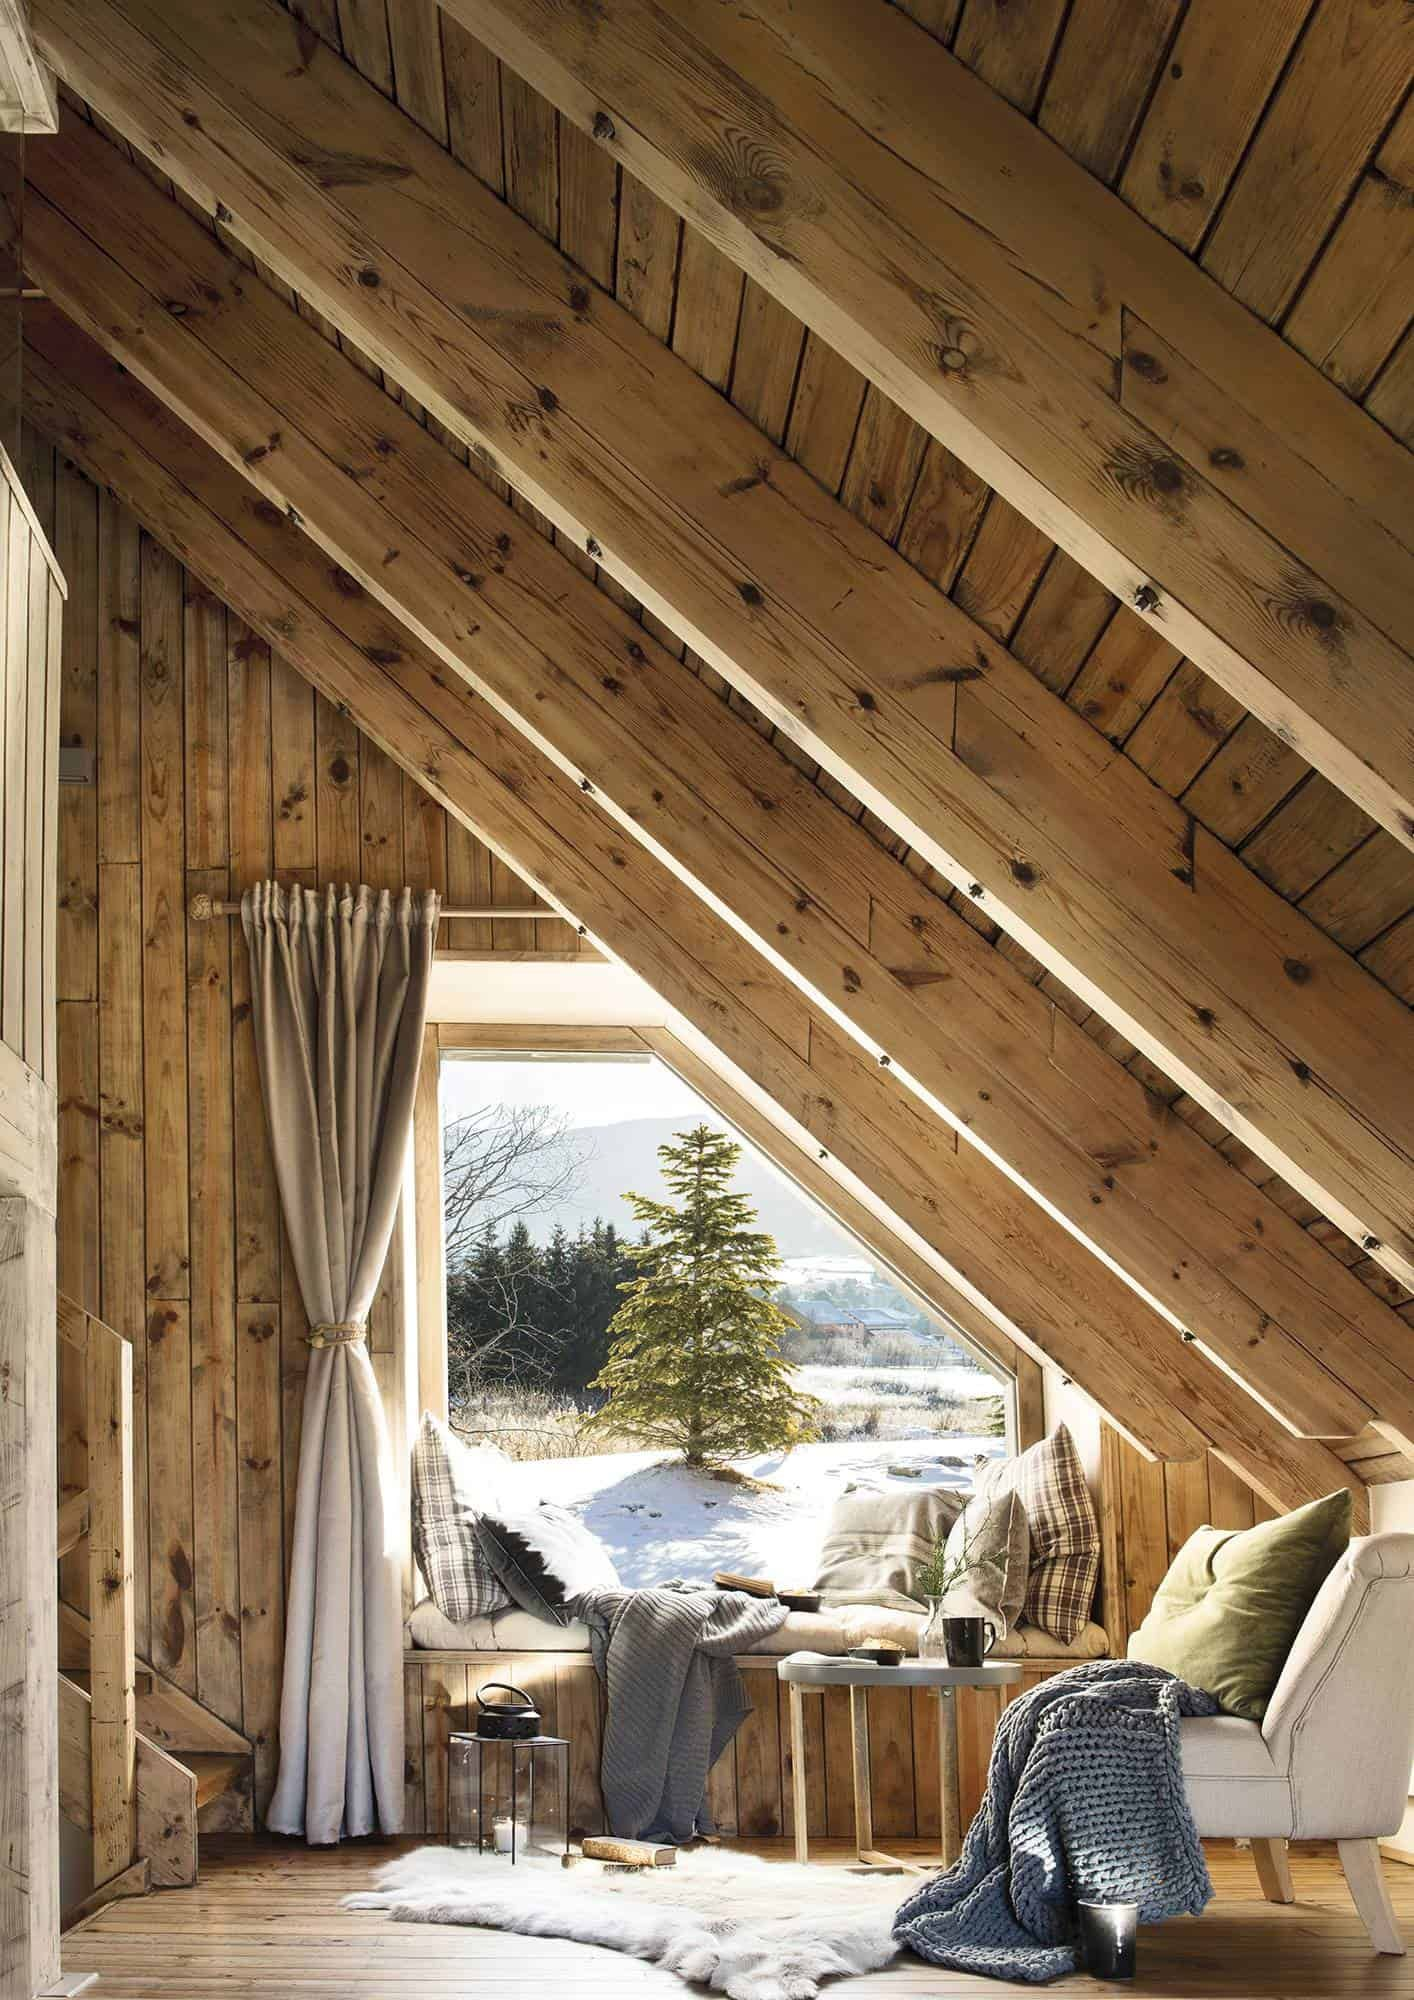 Cozy mountain cabin gets magical transformation in the Aran Valley, Spain